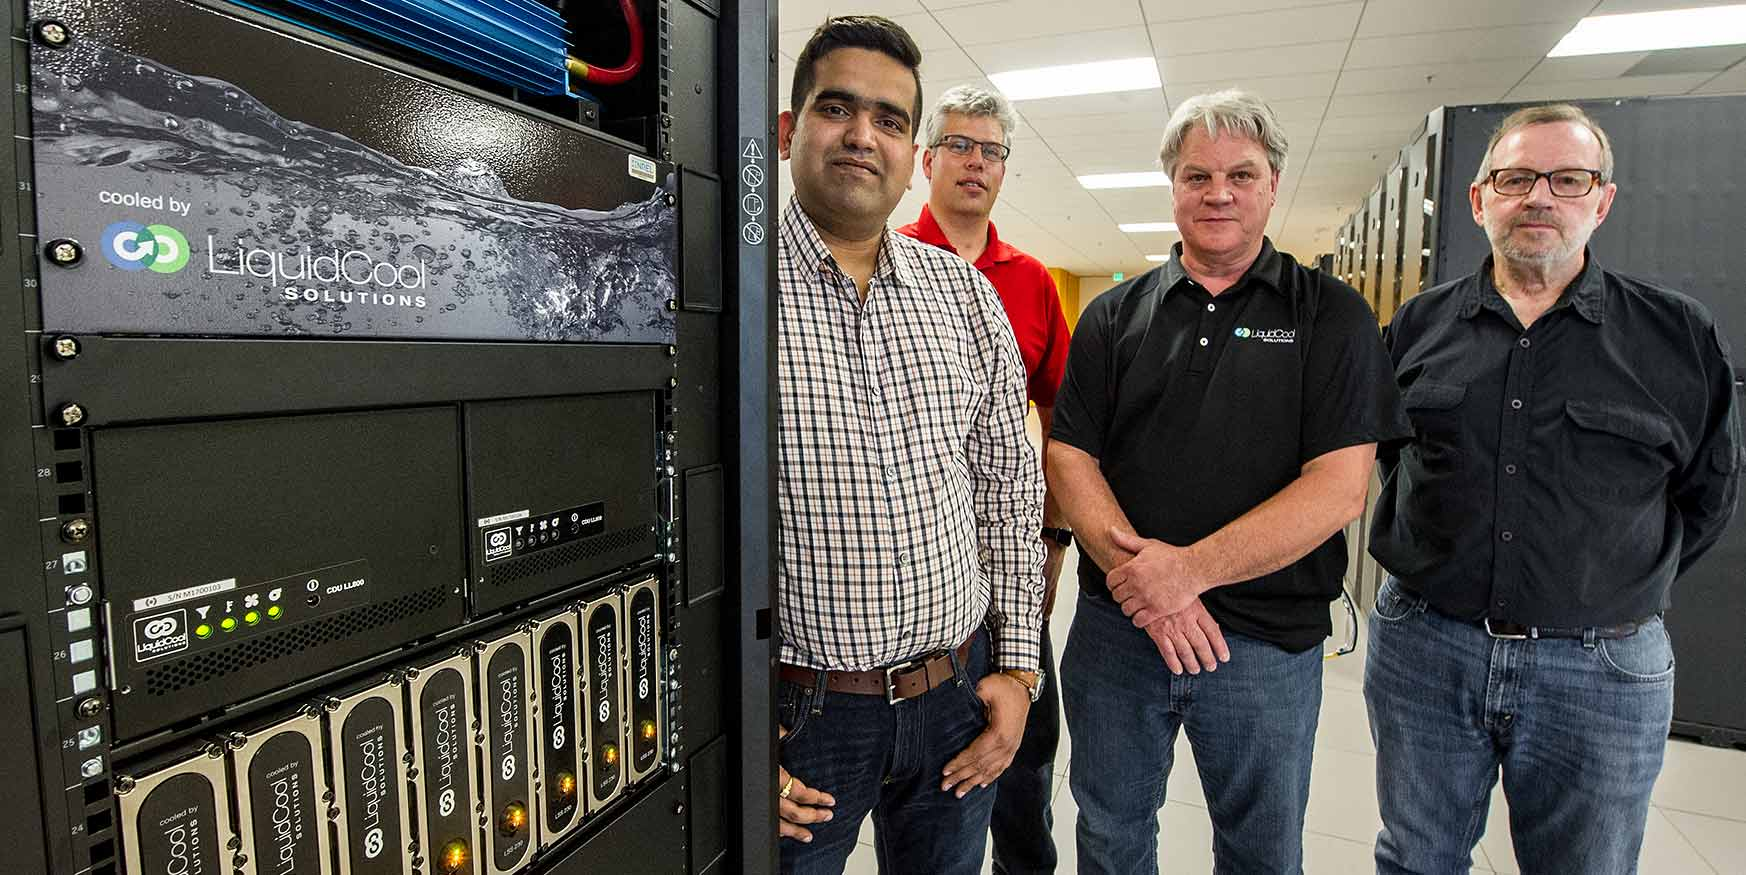 NREL researchers and LiquidCool Solutions representatives stand along-side LiquidCool's server cooling technology.